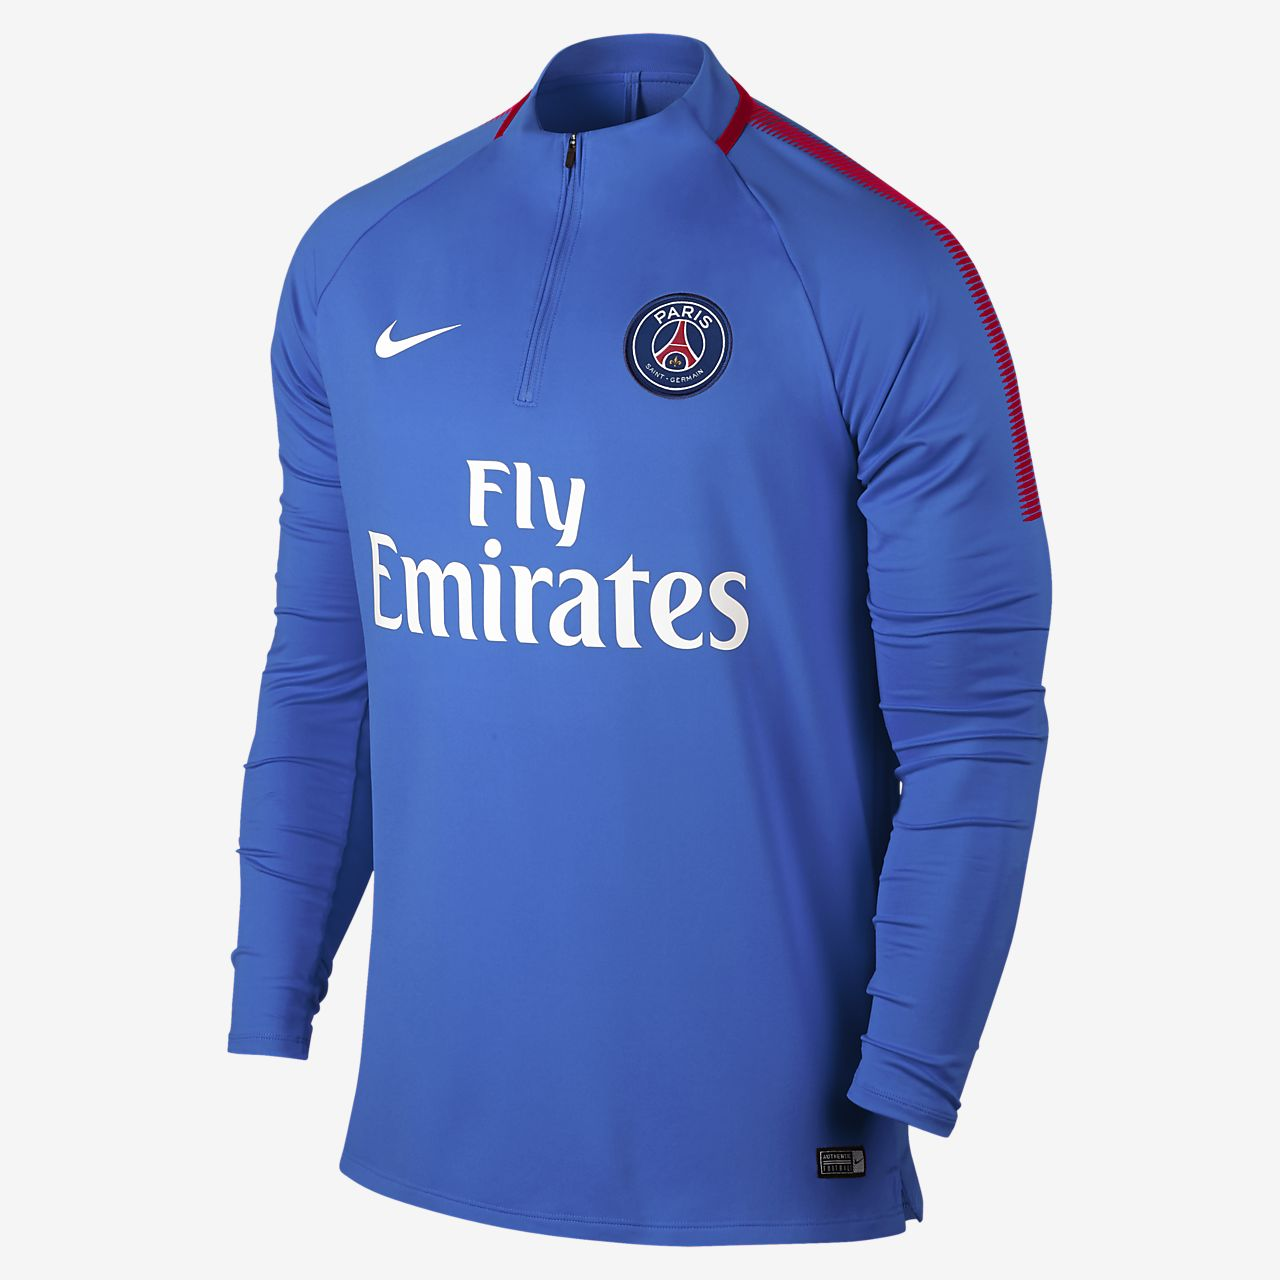 completo calcio Paris Saint-Germain nuove